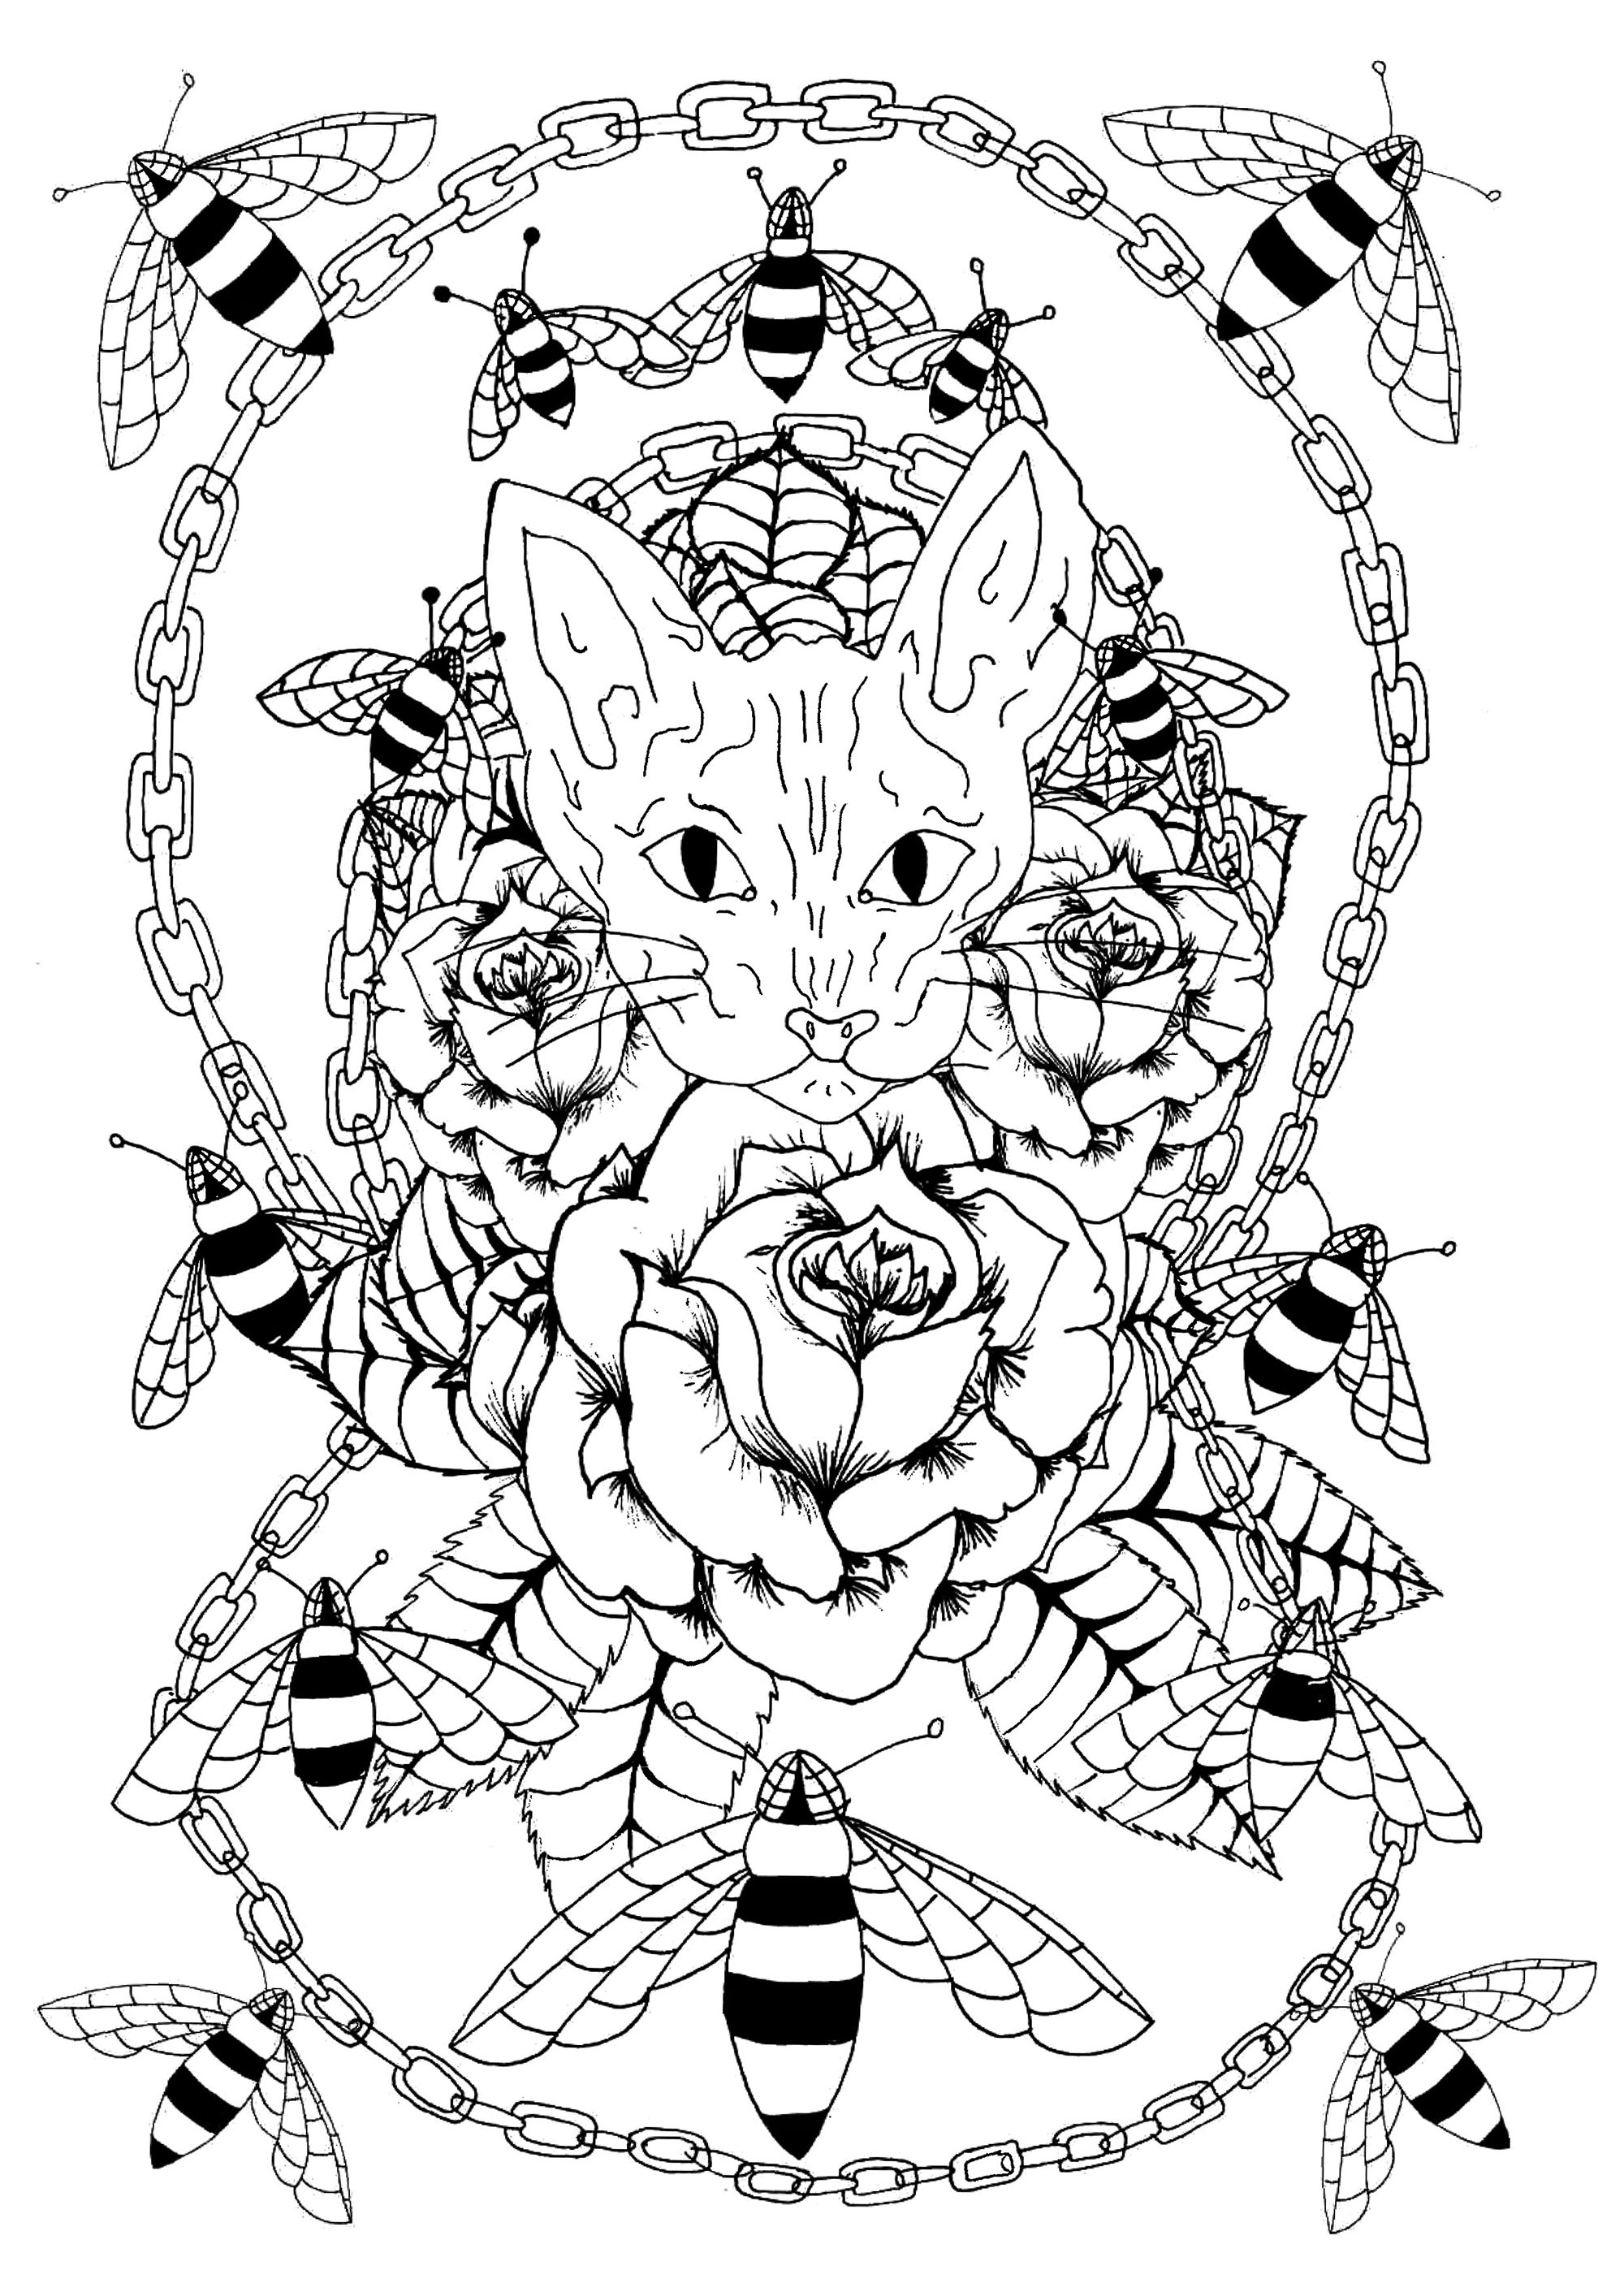 Sphynx cat head surrounded by roses, bees and a metal chain